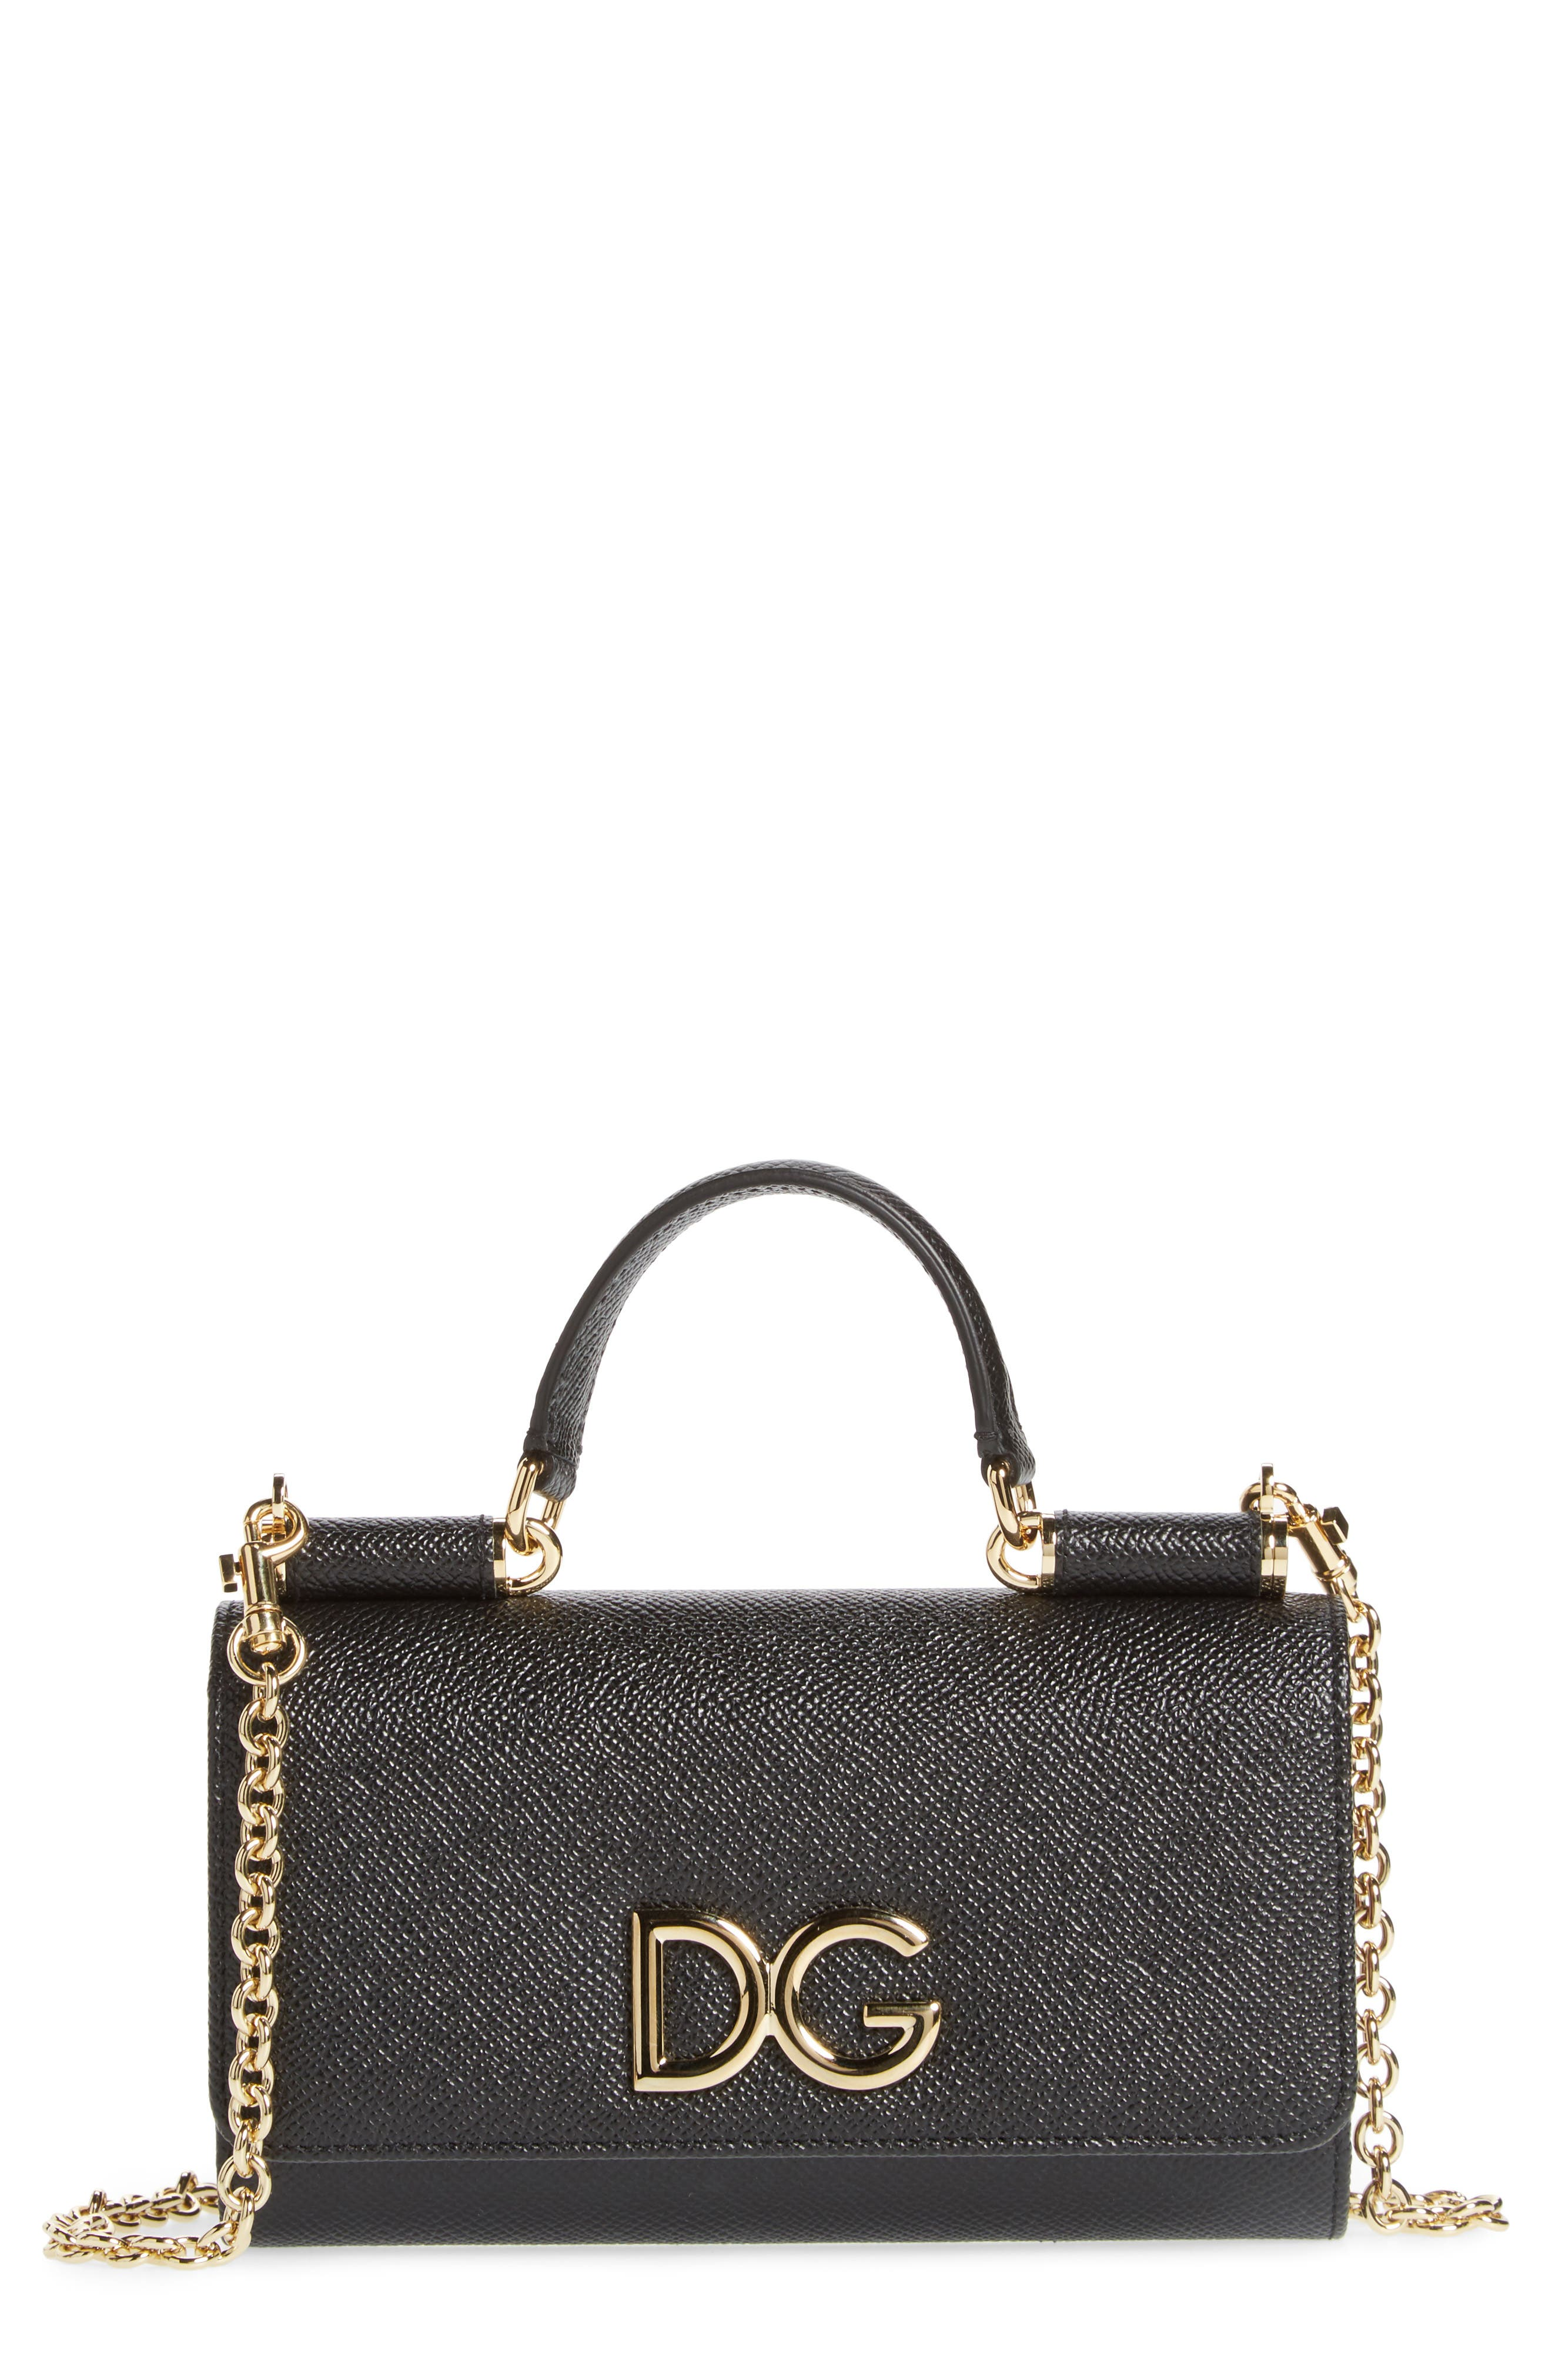 Dolce&Gabanna Logo Phone Wallet on a Chain